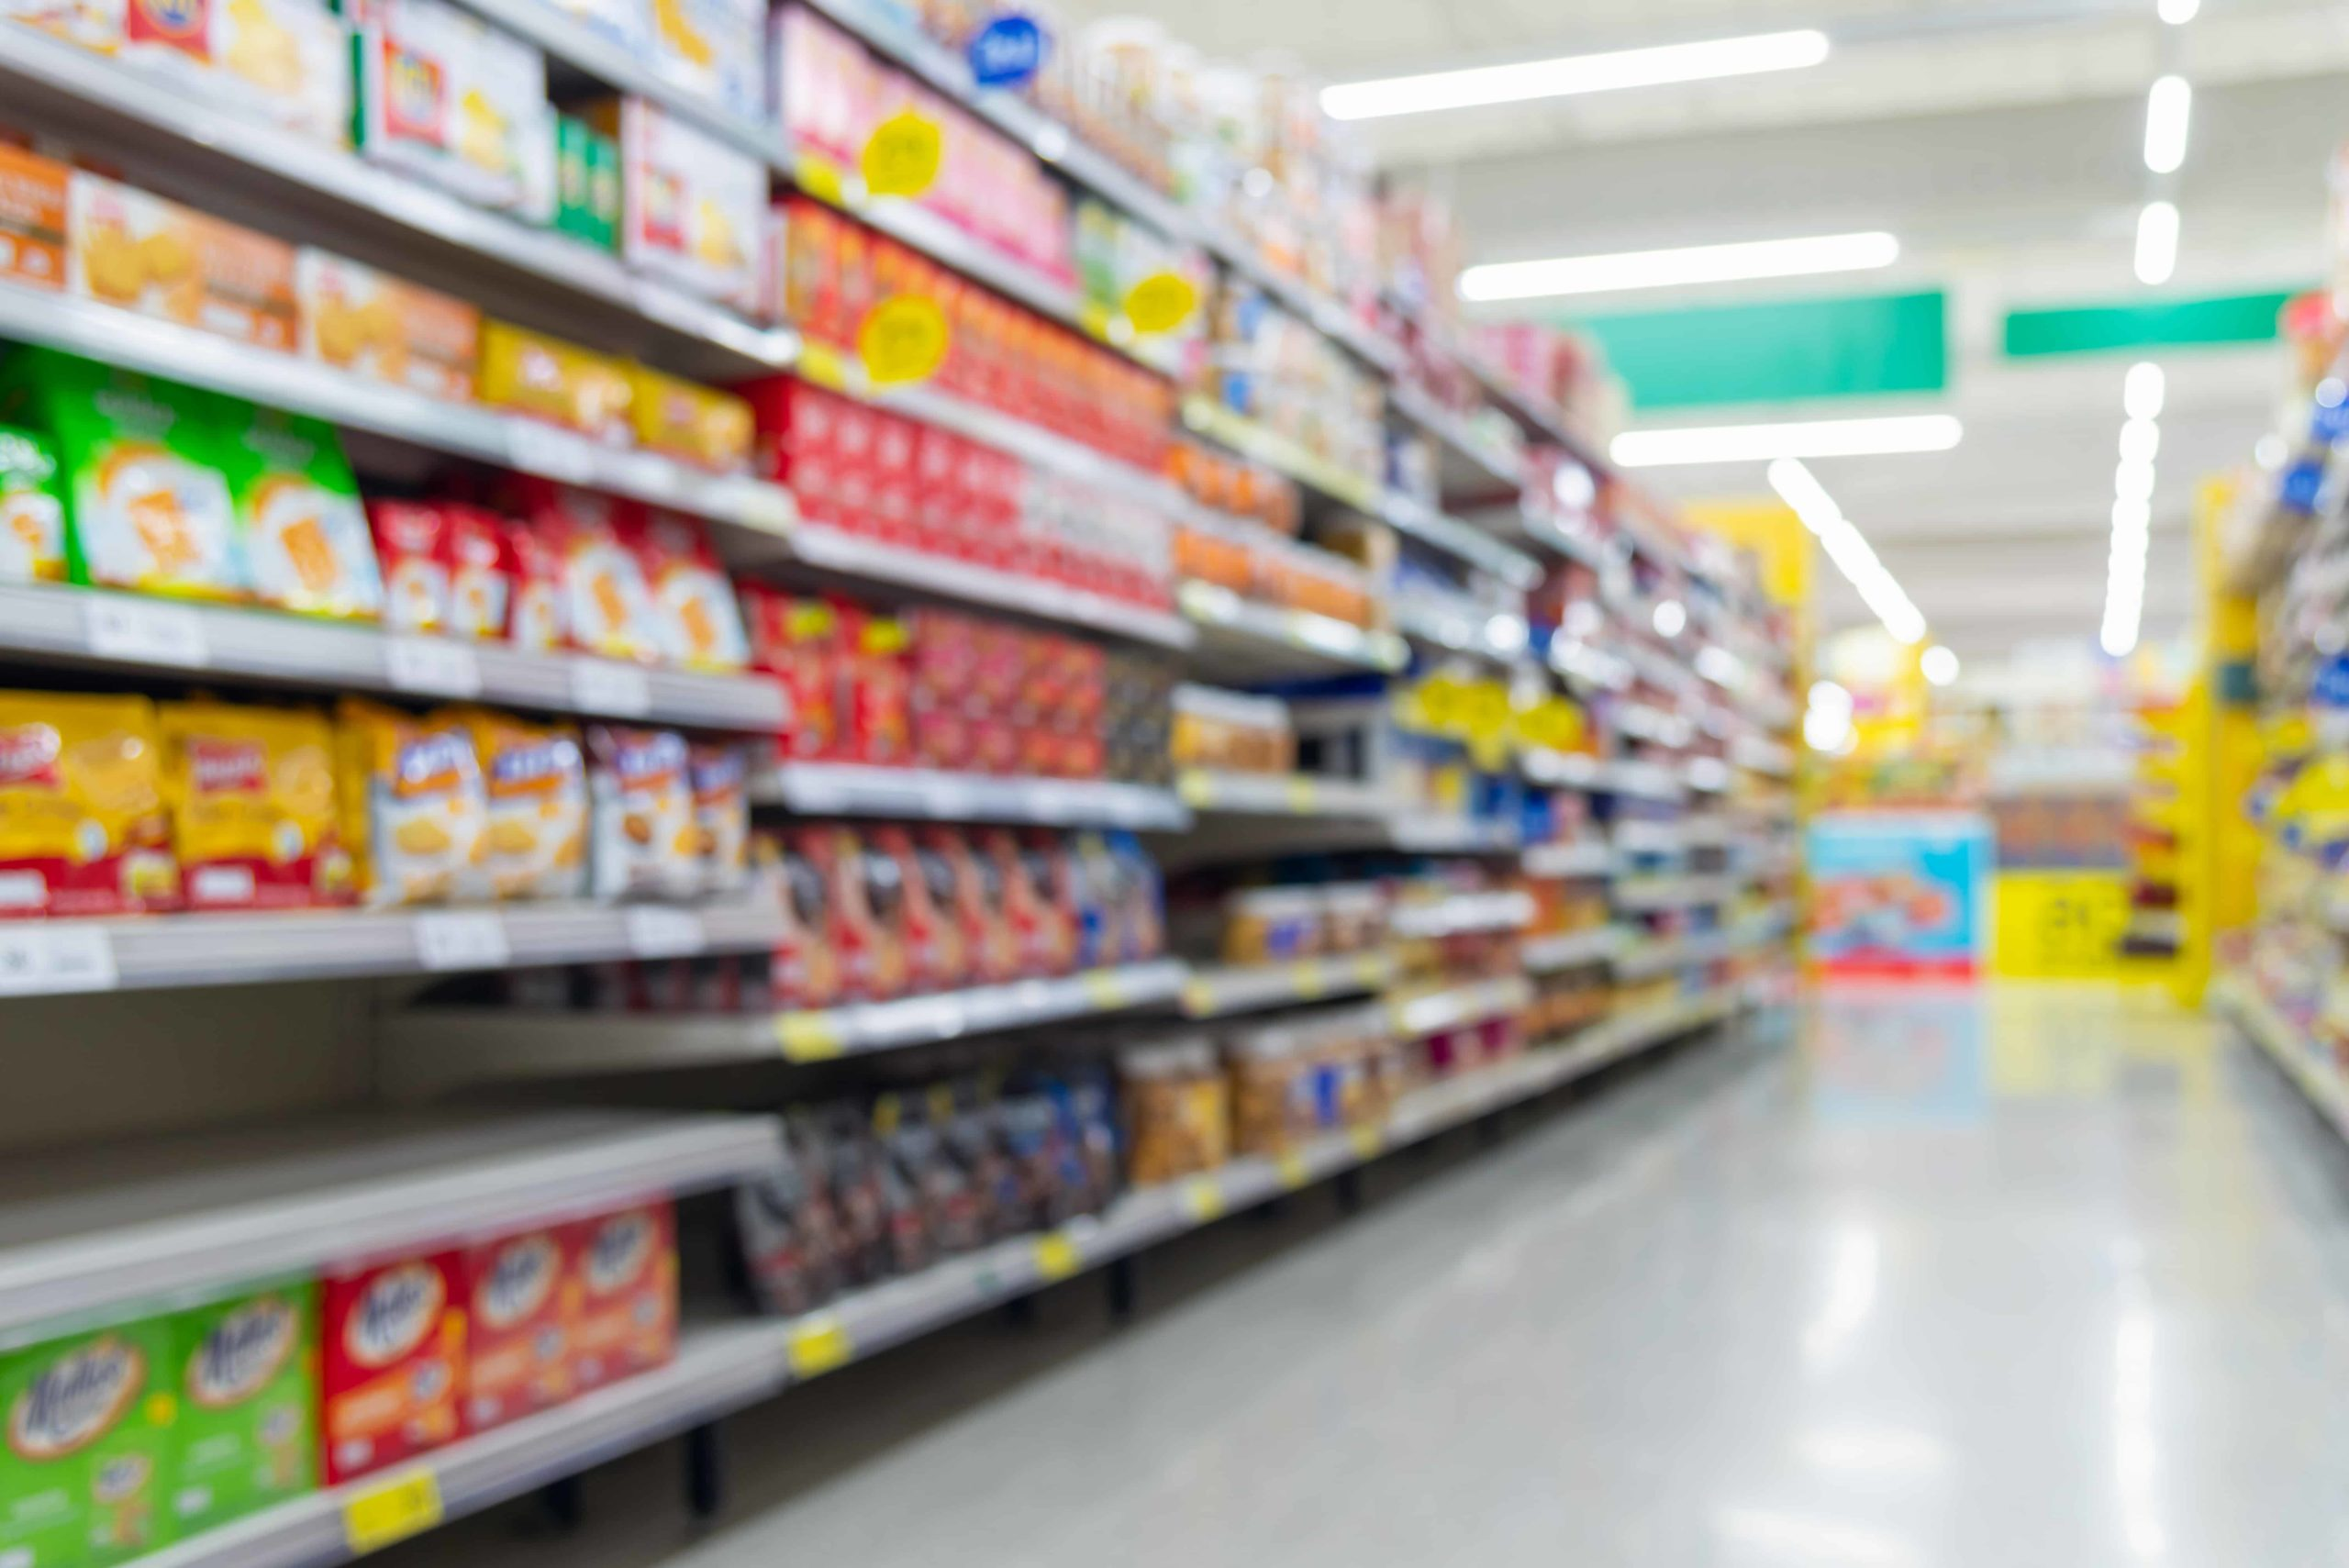 blurred-background-of-supermarket-aisle-with-products - cópia